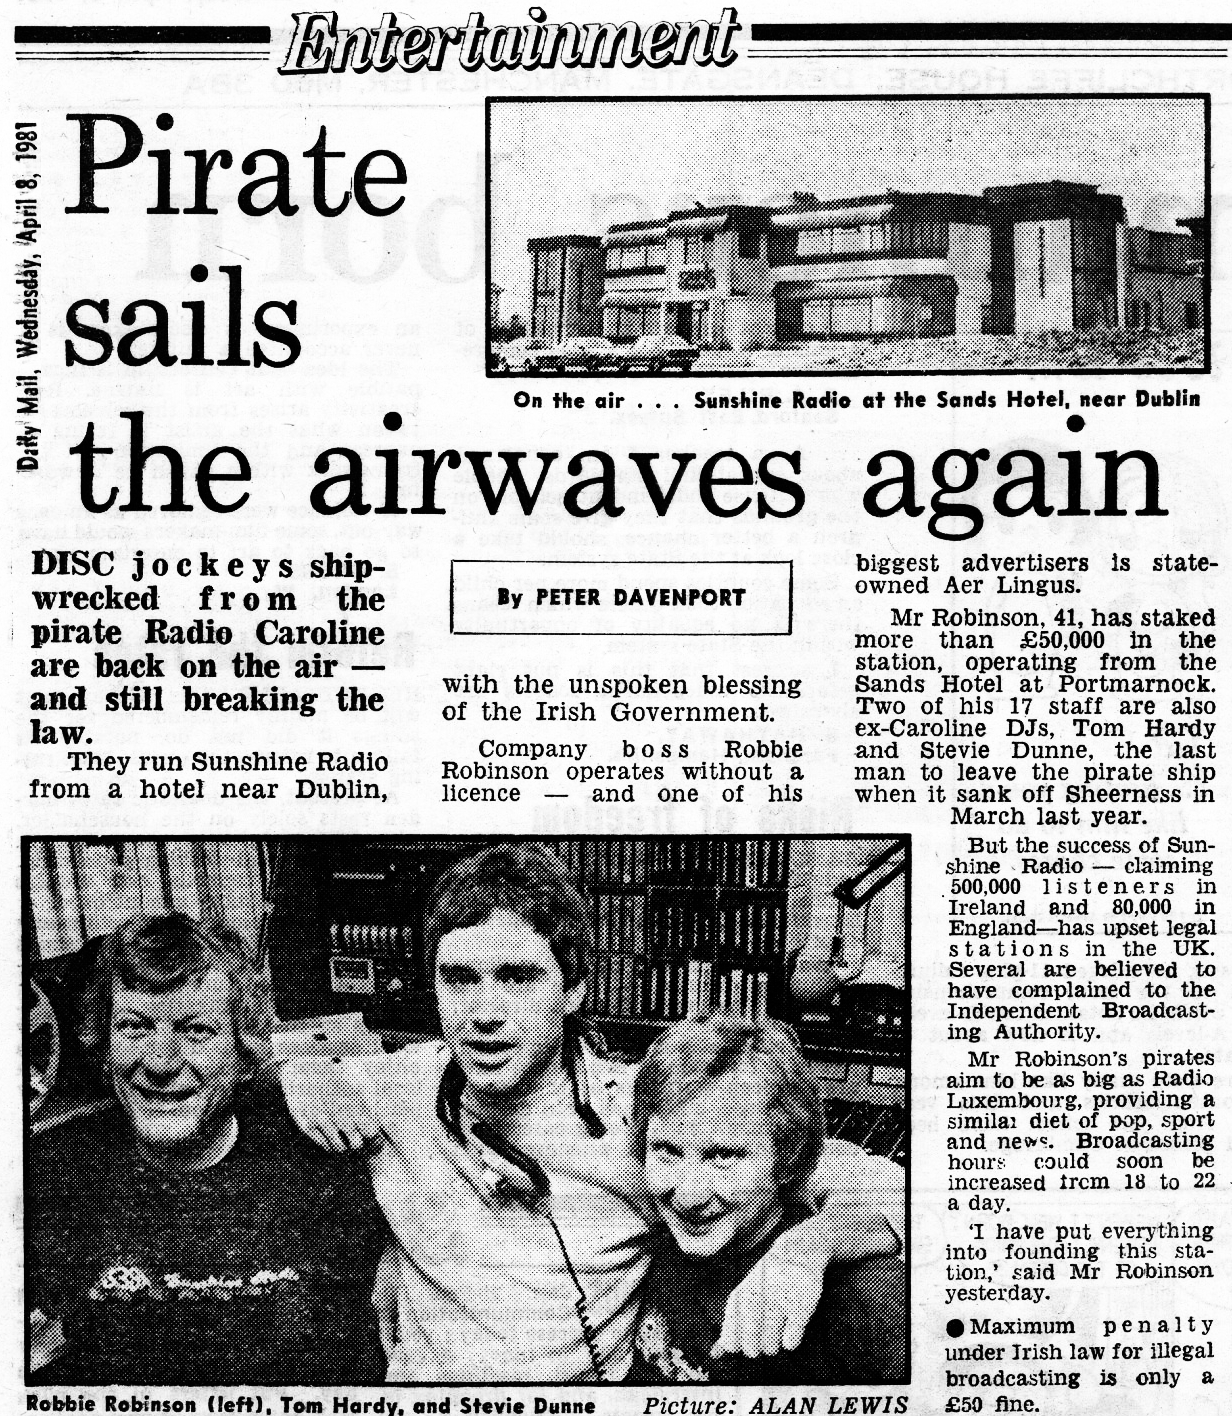 Pirate sails the airwaves again was a newspaper headline from the Daily Mail dated April 8th 1981